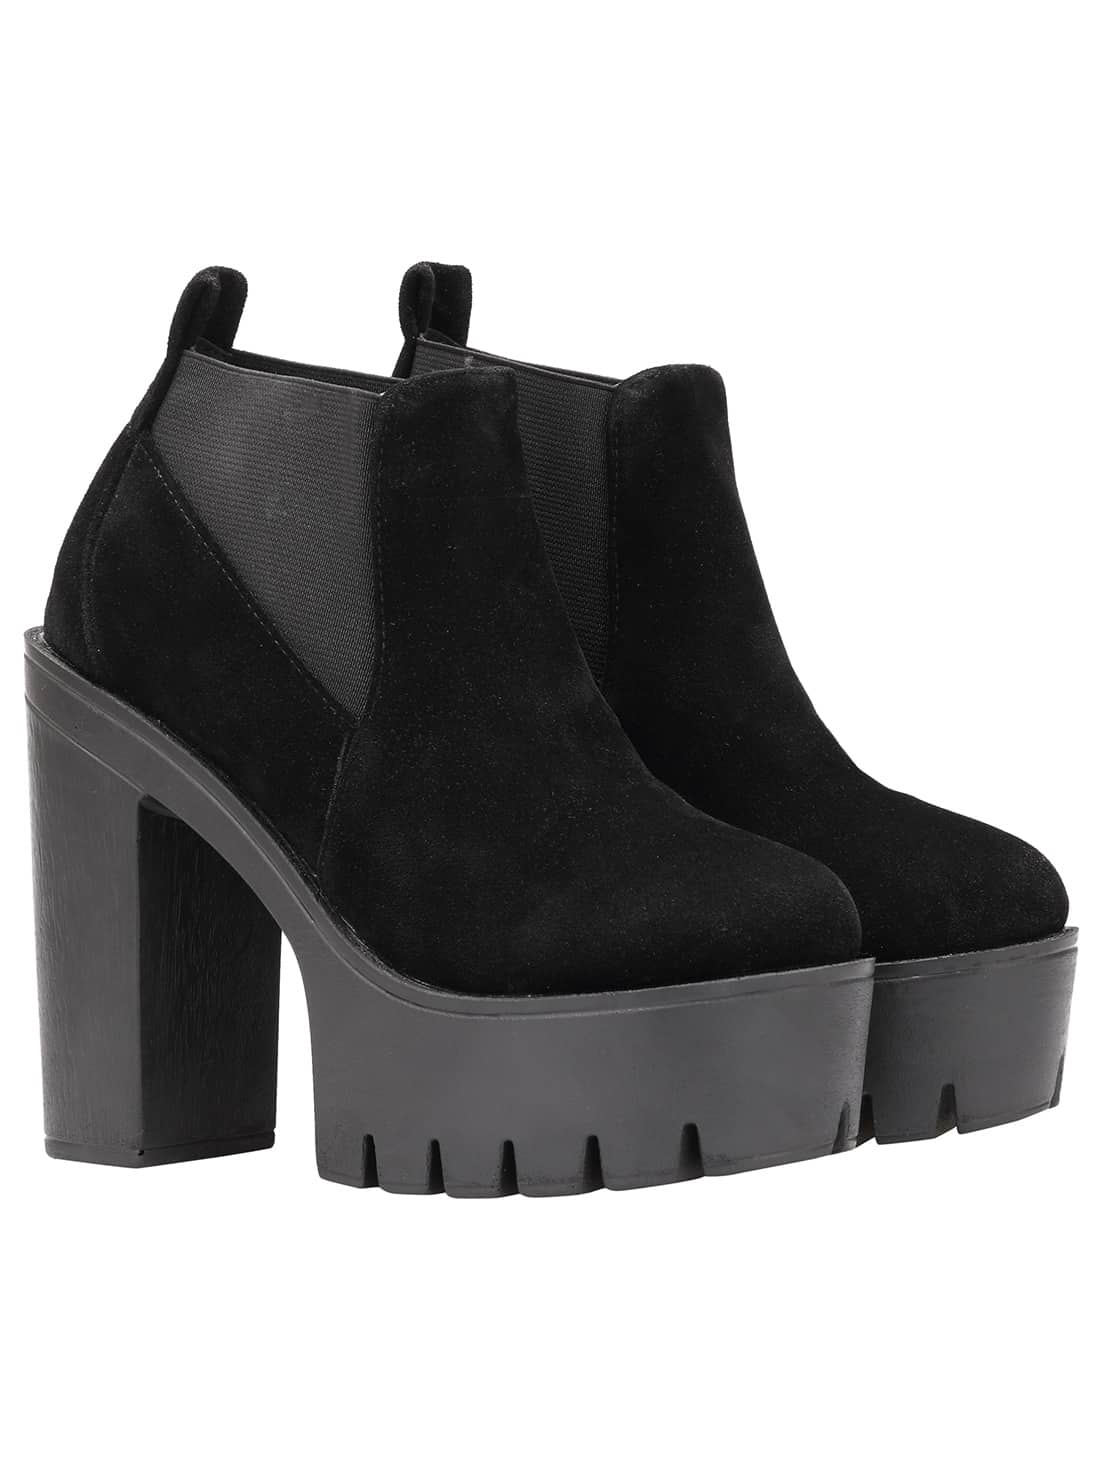 Black Round Toe Elastic High Heeled Boots